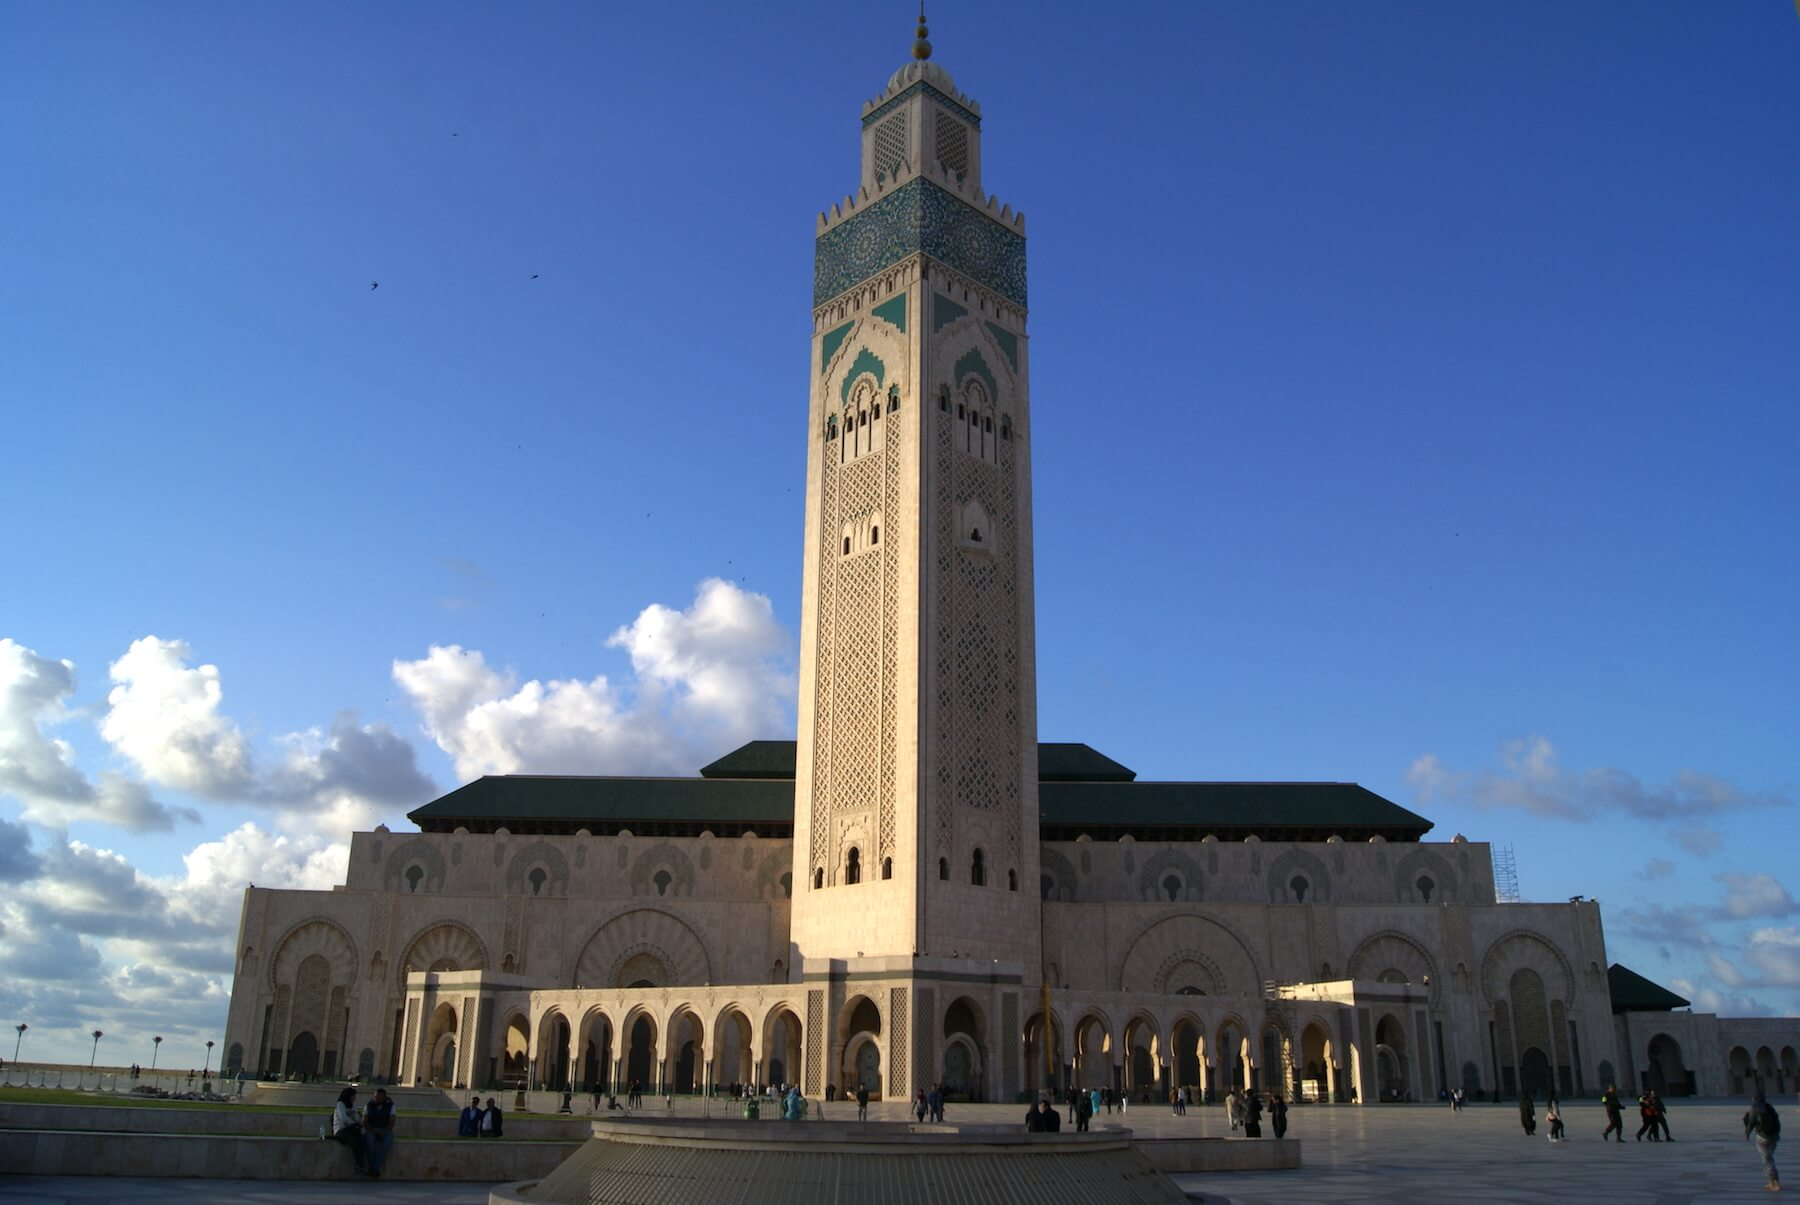 Visiting the Hassan II Mosque in Casablanca - Opening Hours, Tours and Costs